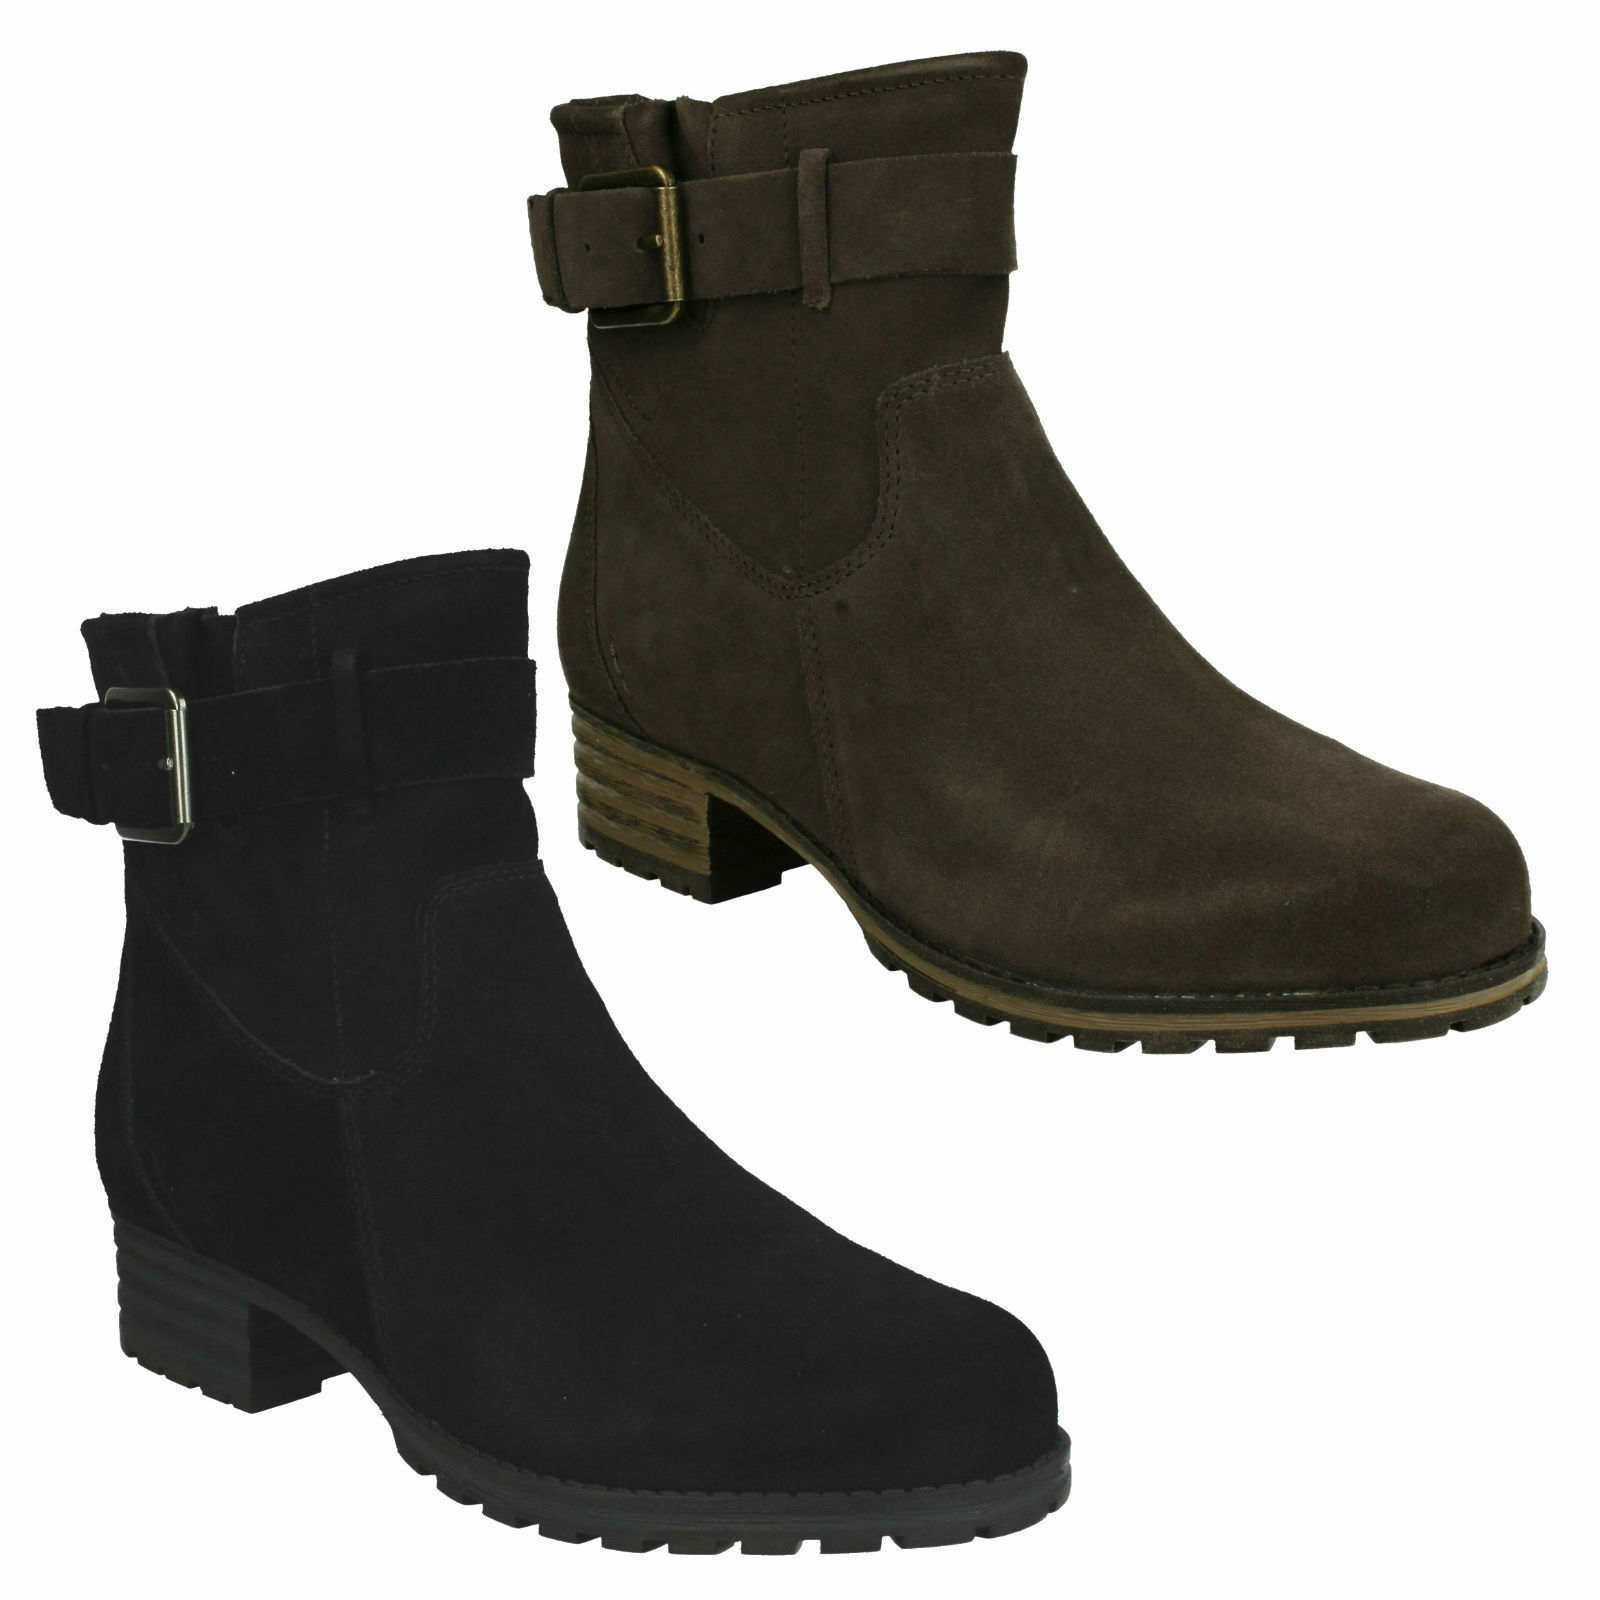 MARANA AMBER CLARKS LADIES CASUAL ZIP UP SUEDE HEELED CASUAL LADIES Damenschuhe ANKLE Stiefel SIZE d18130